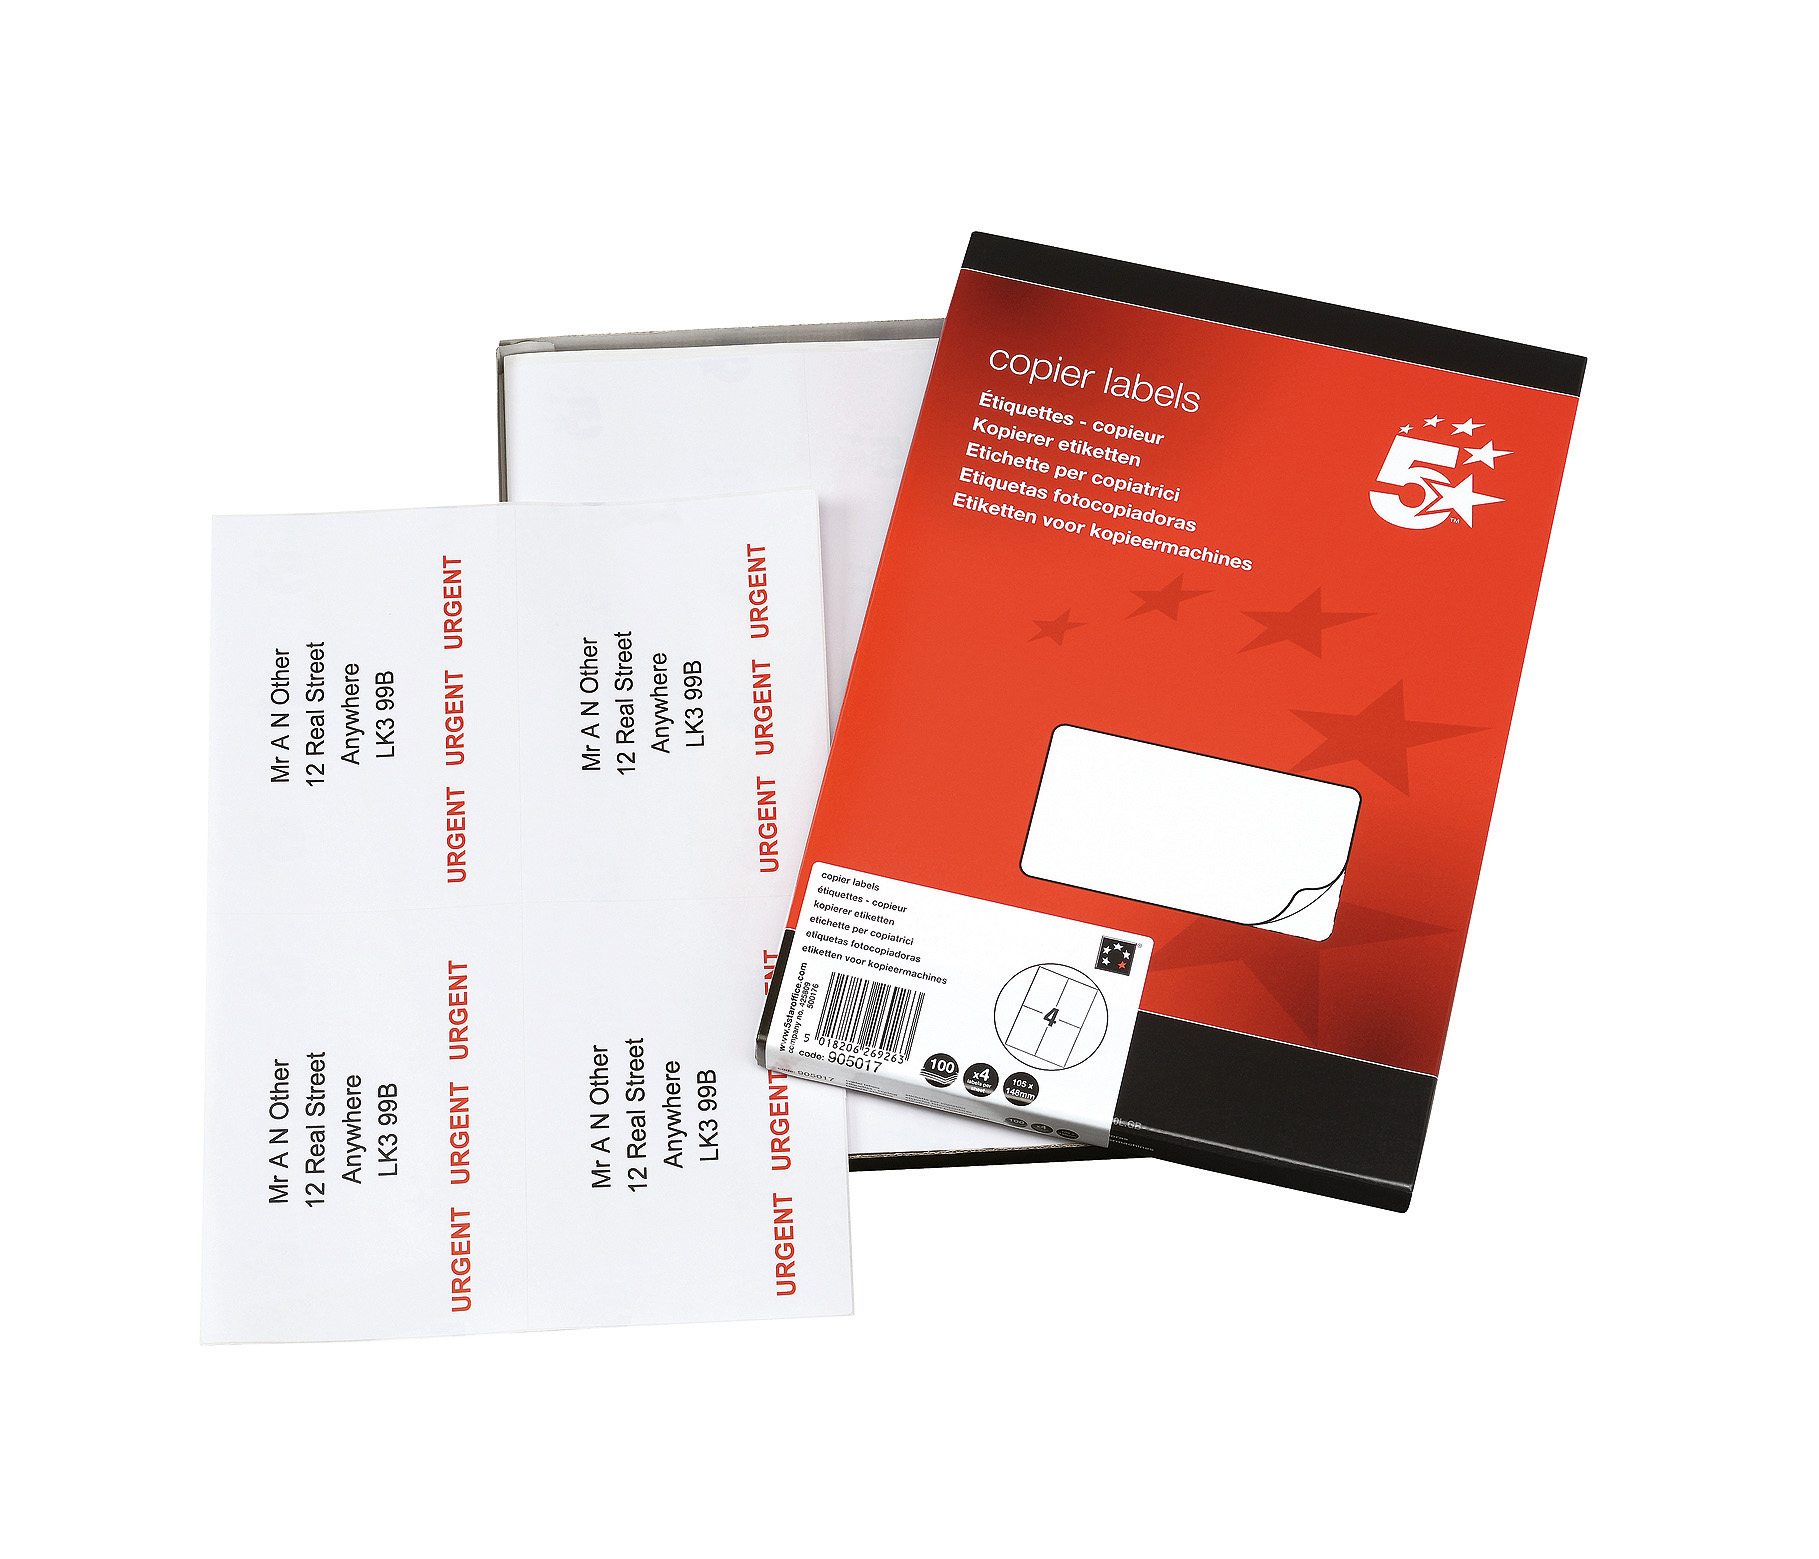 5 Star Office Multipurpose Labels Laser Copier and Inkjet 4 per Sheet 105x148.5mm White 400 Labels